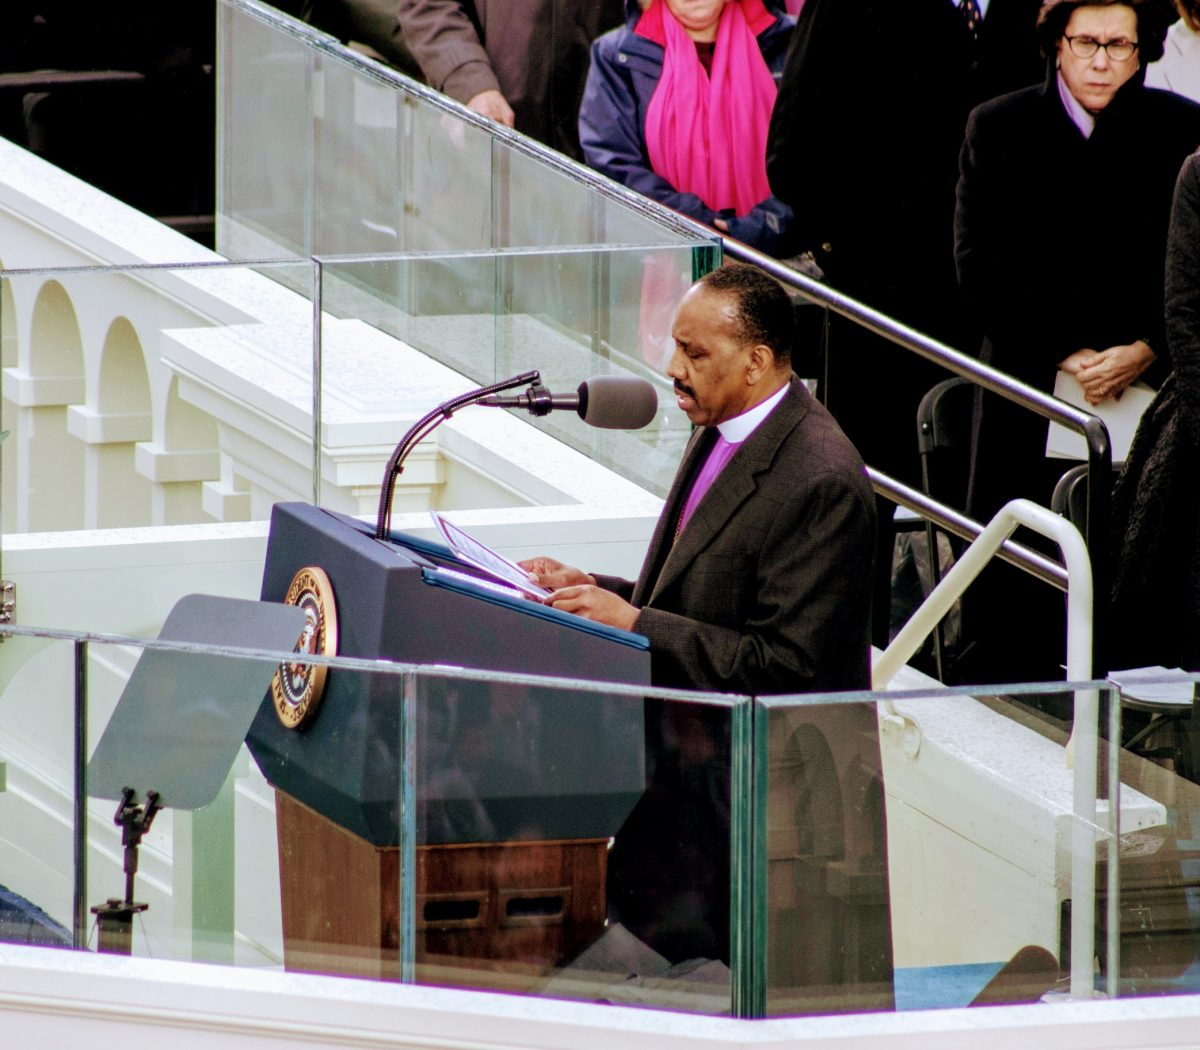 Bishop Wayne T. Jackson delivers the benediction at the inauguration ceremony of the 45th President. /Photo by Shevry Lassiter